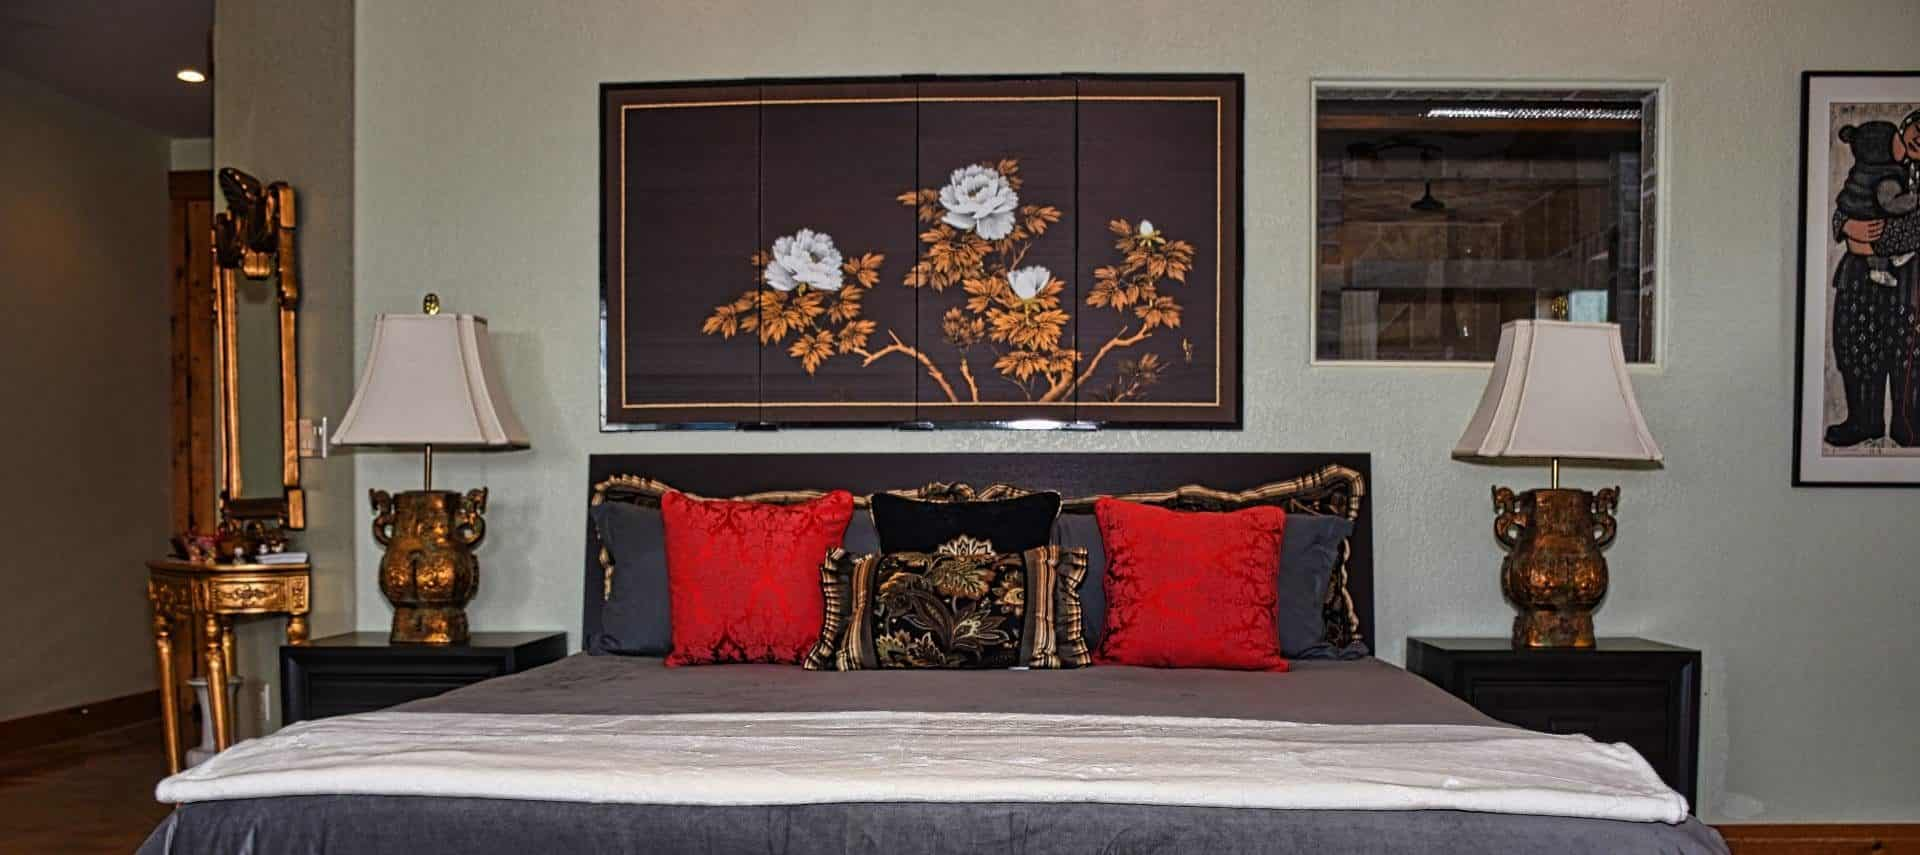 Bedroom with black wooden furniture, dark gray bedding, gray and red pillows, and large artwork hanging on the wall over the bed